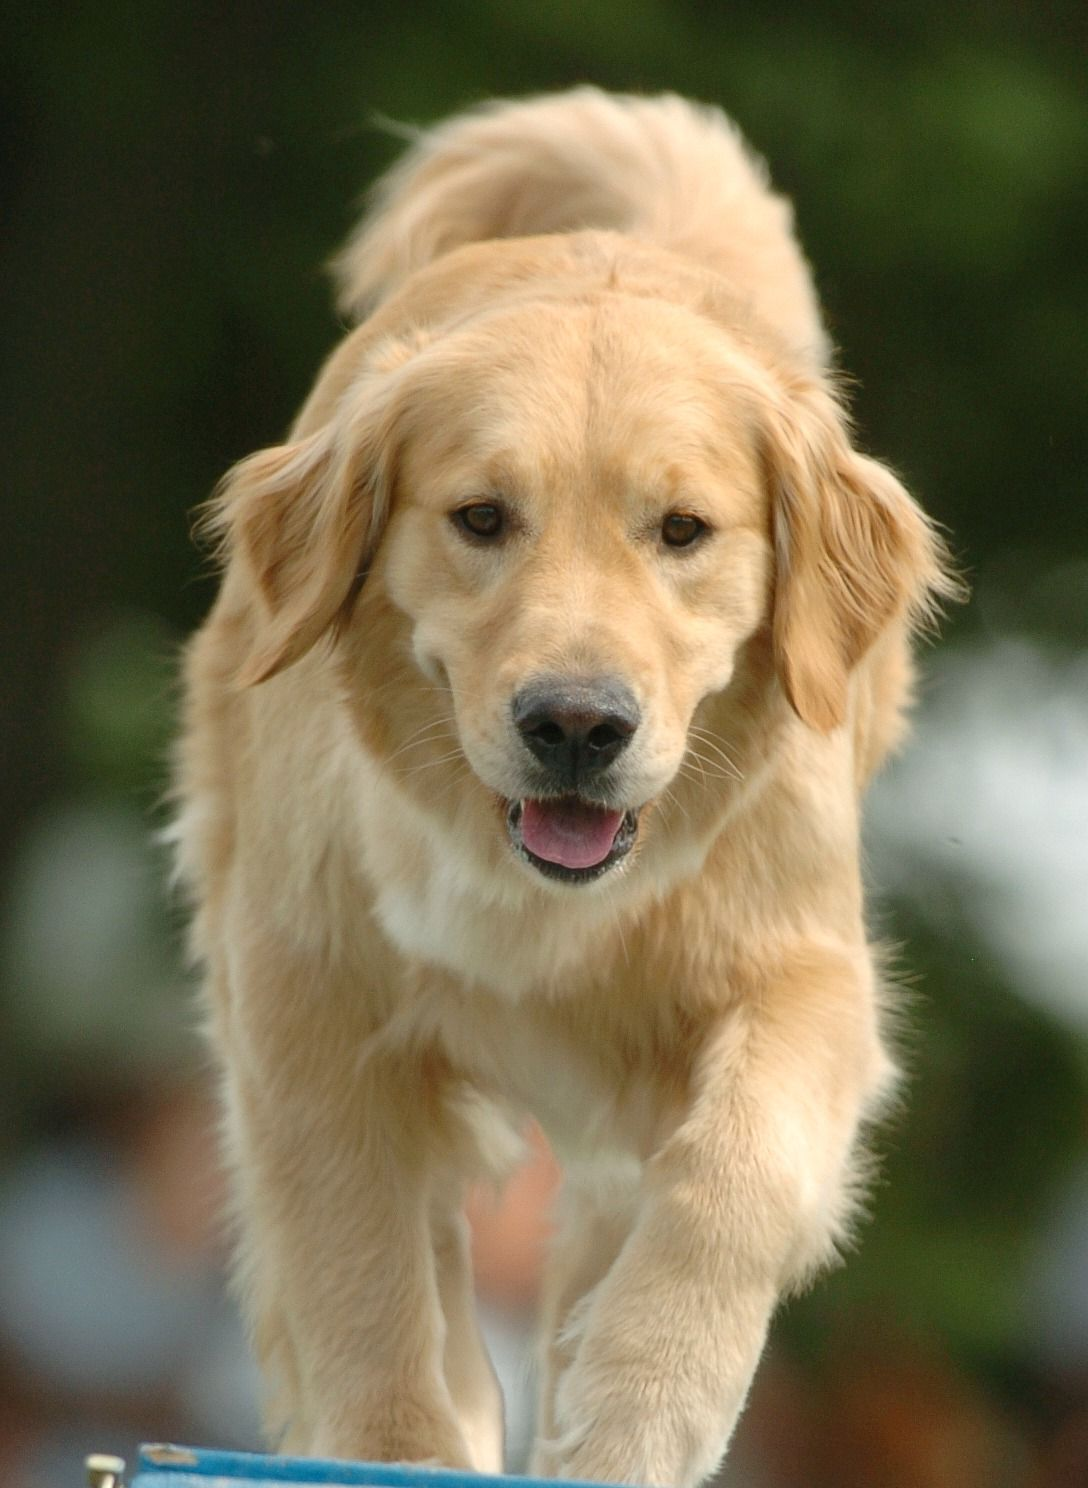 Golden Retriever Dogs Easy And Fun Training Puppies Responds Well